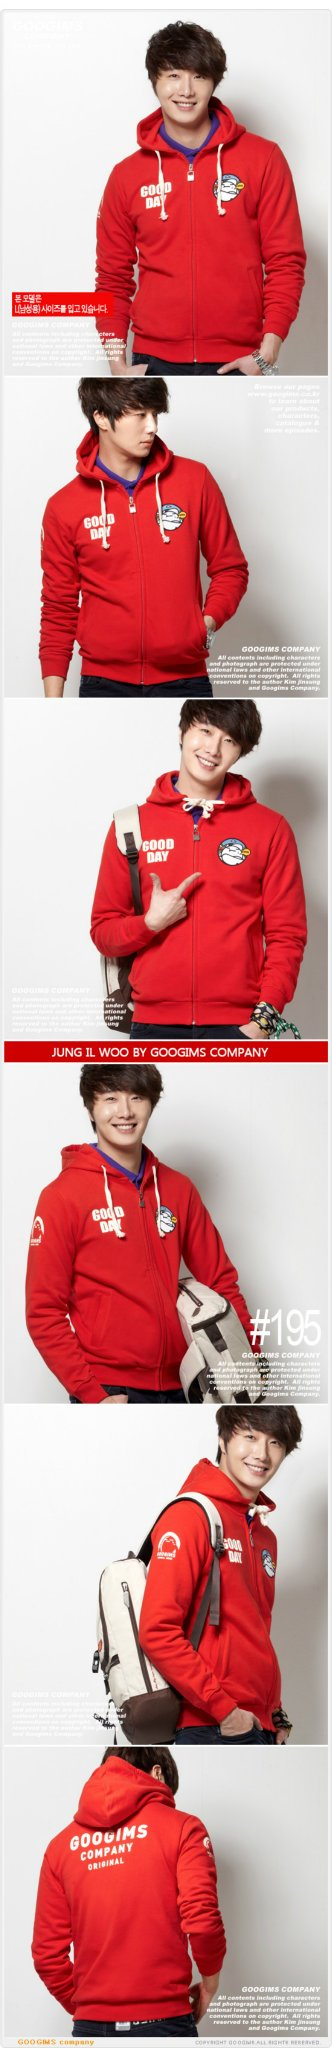 2011 10 Jung II-woo for Googims. Part 100048